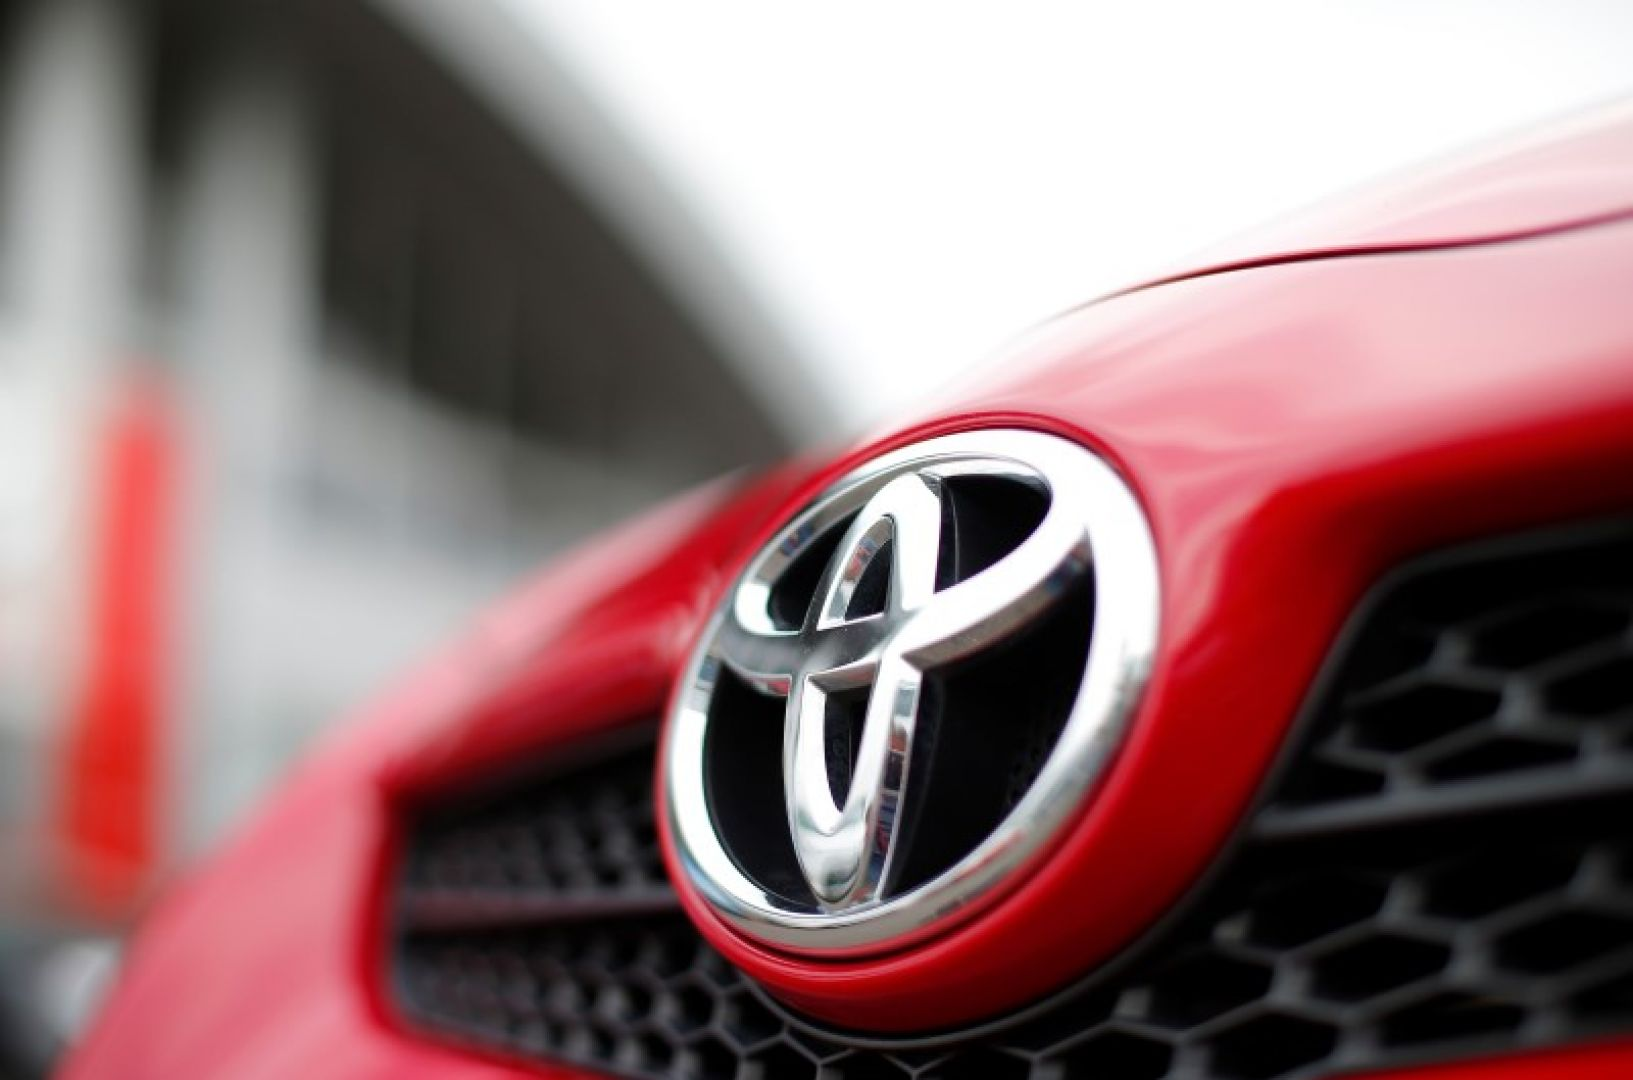 Toyota Remains World's Most Valuable Car Brand, Study Shows